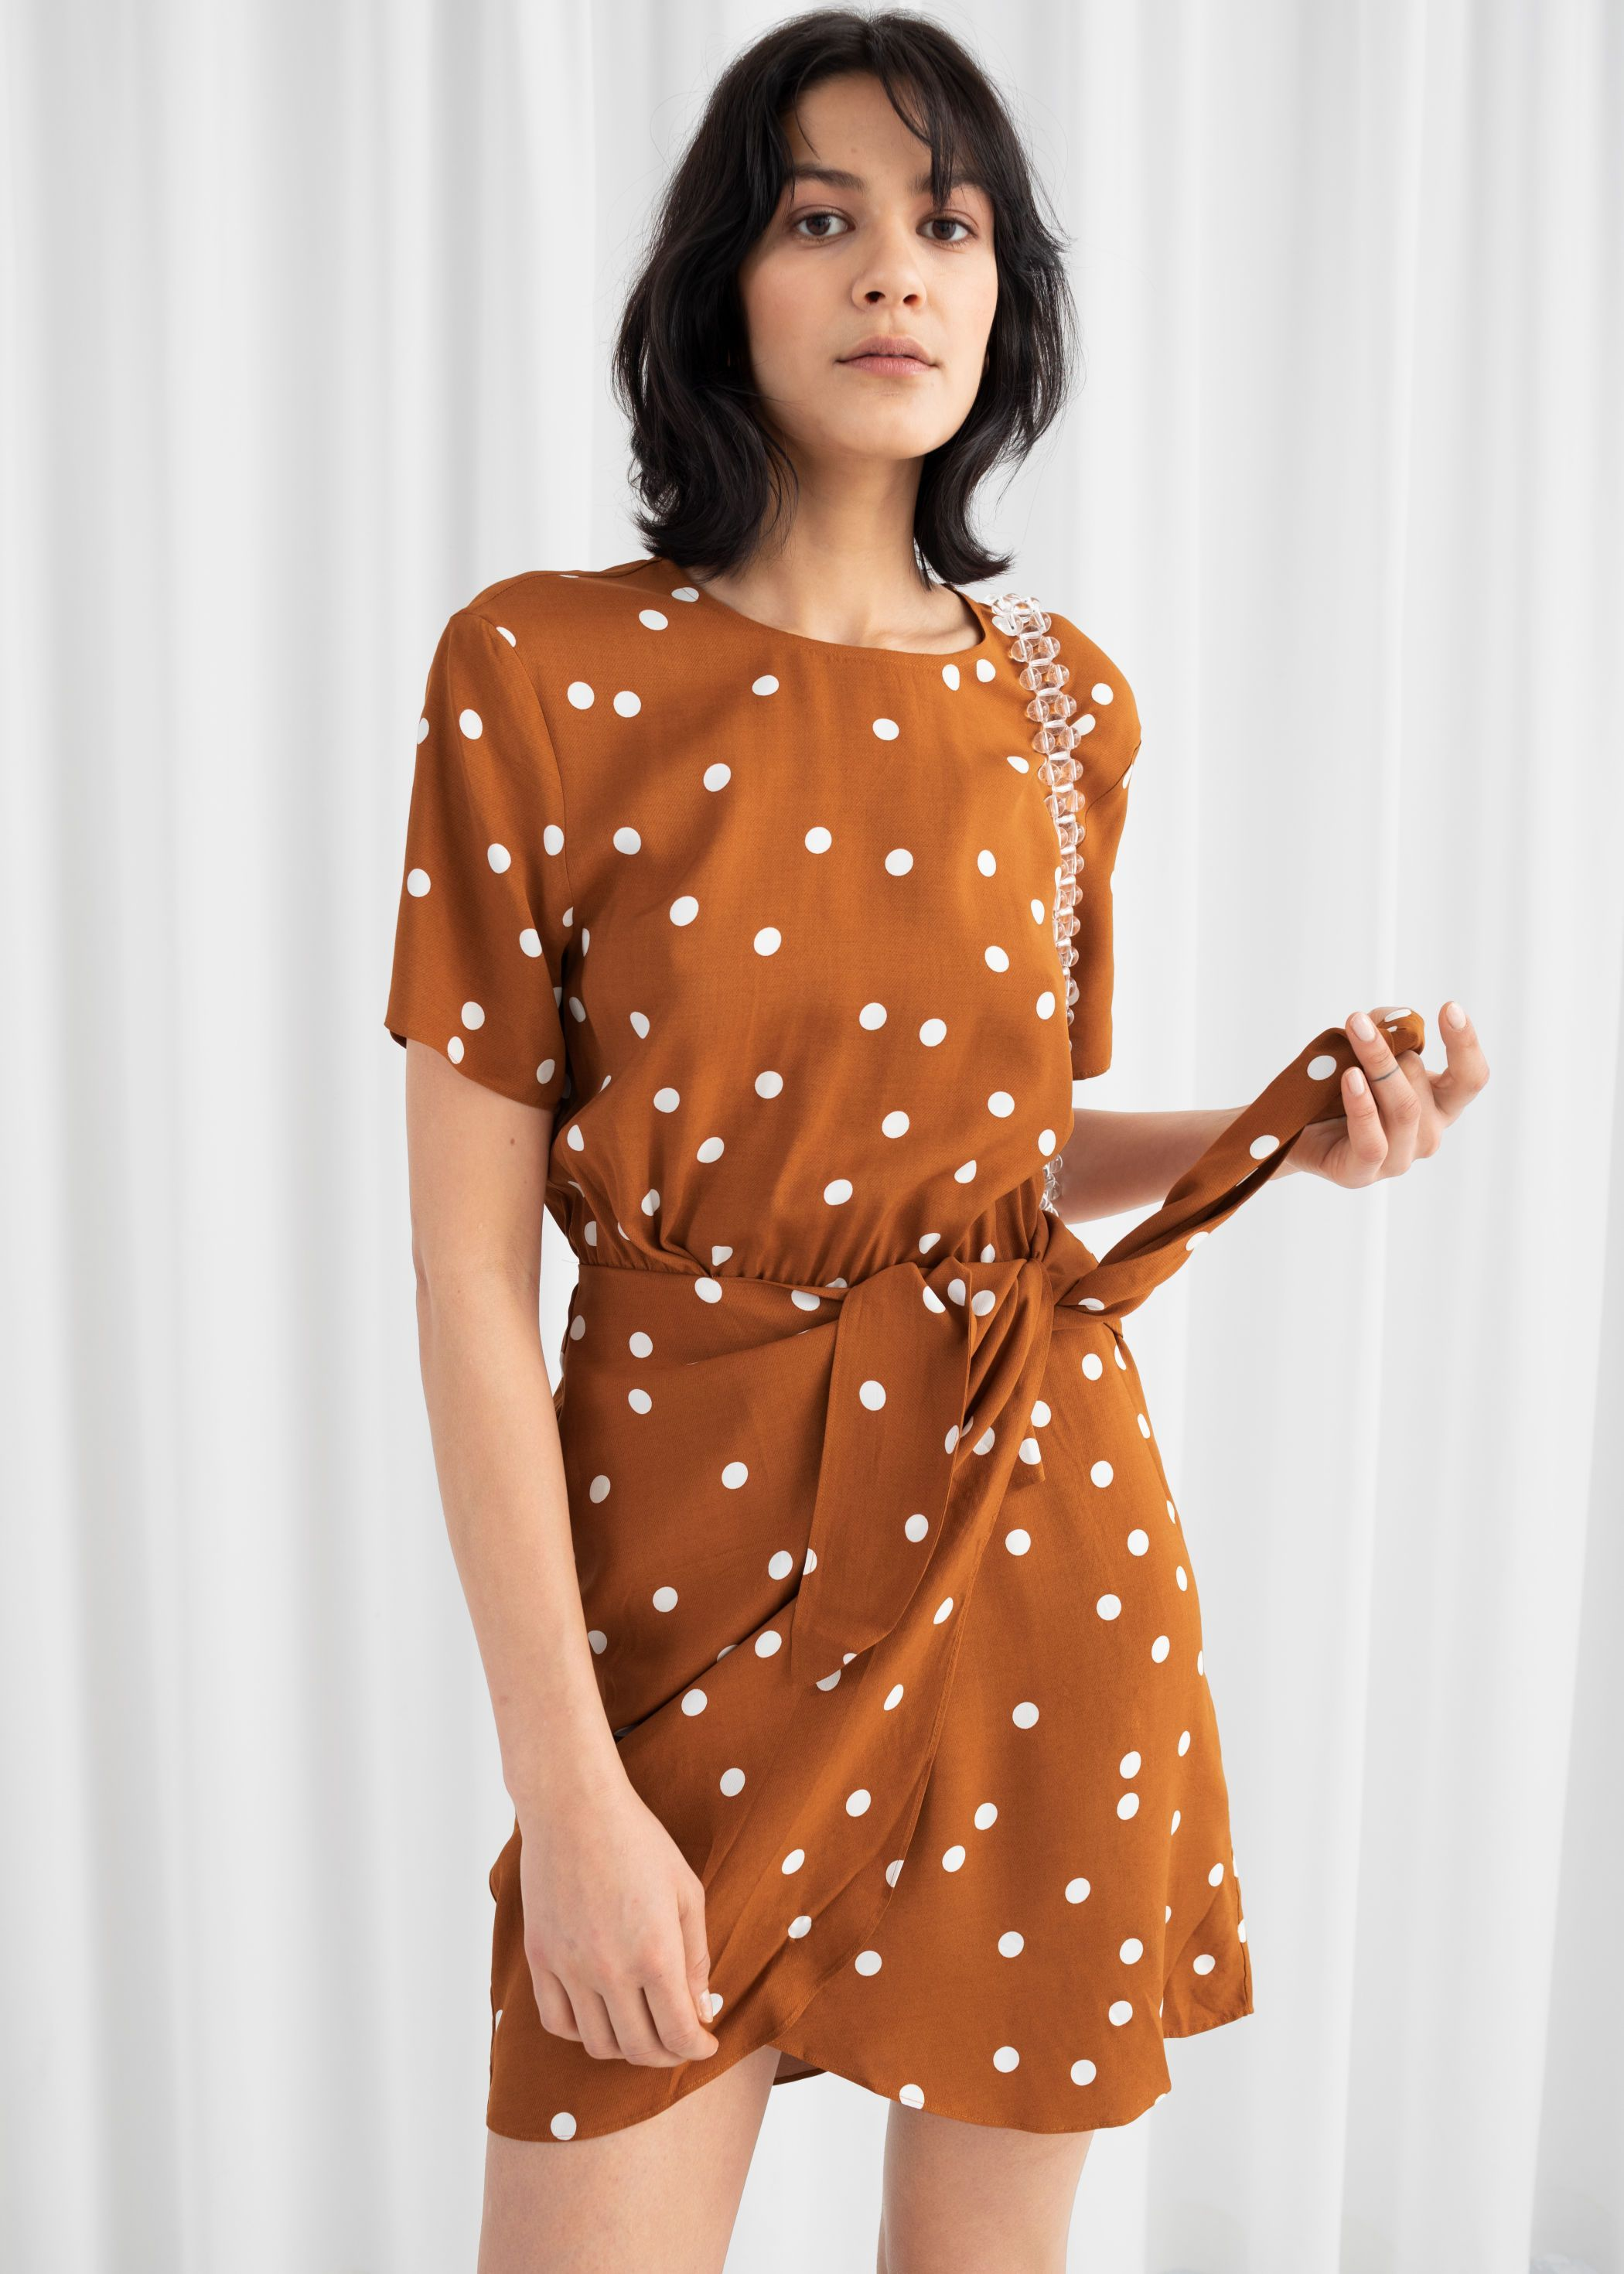 7 Spring Trends Inspired By 90s Rom Coms From Pretty Woman To B A P S Mini Wrap Dress Wrap Dress Short Sleeve Mini Dress [ 2940 x 2100 Pixel ]